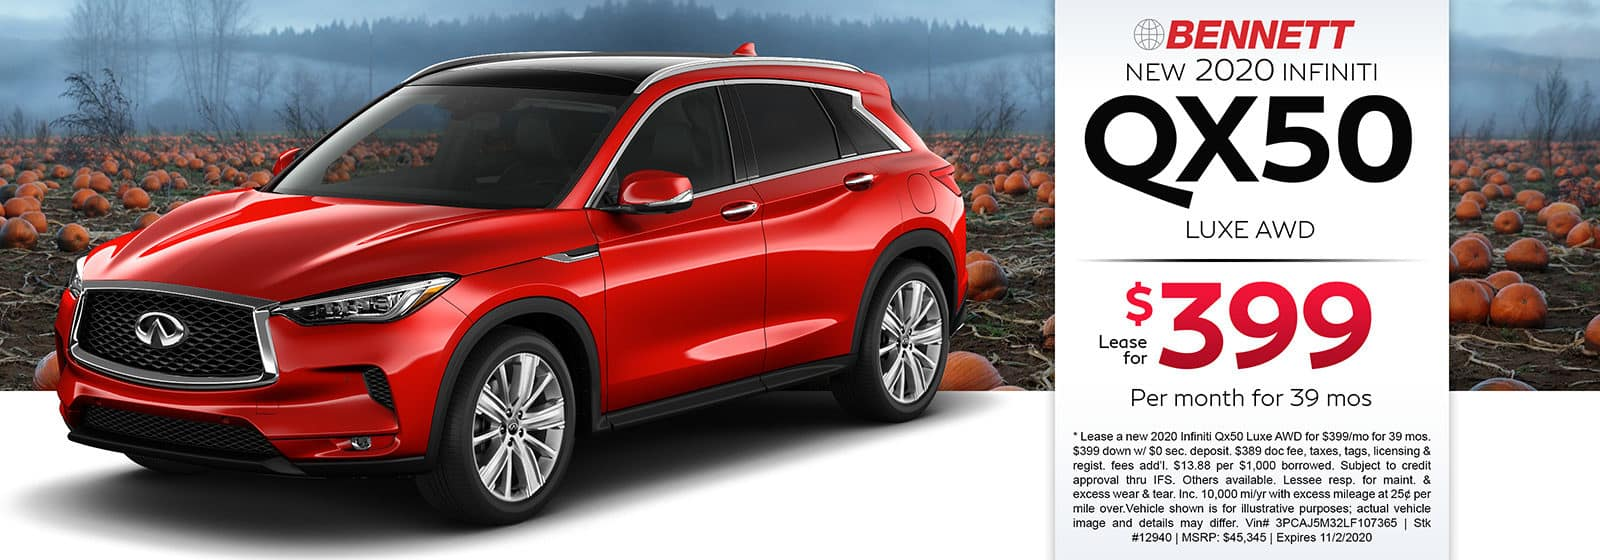 Lease a new 2020 INFINITI QX50 Luxe AWD for $399 a month for 39 months. Or get special 0% APR financing for up to 72 months